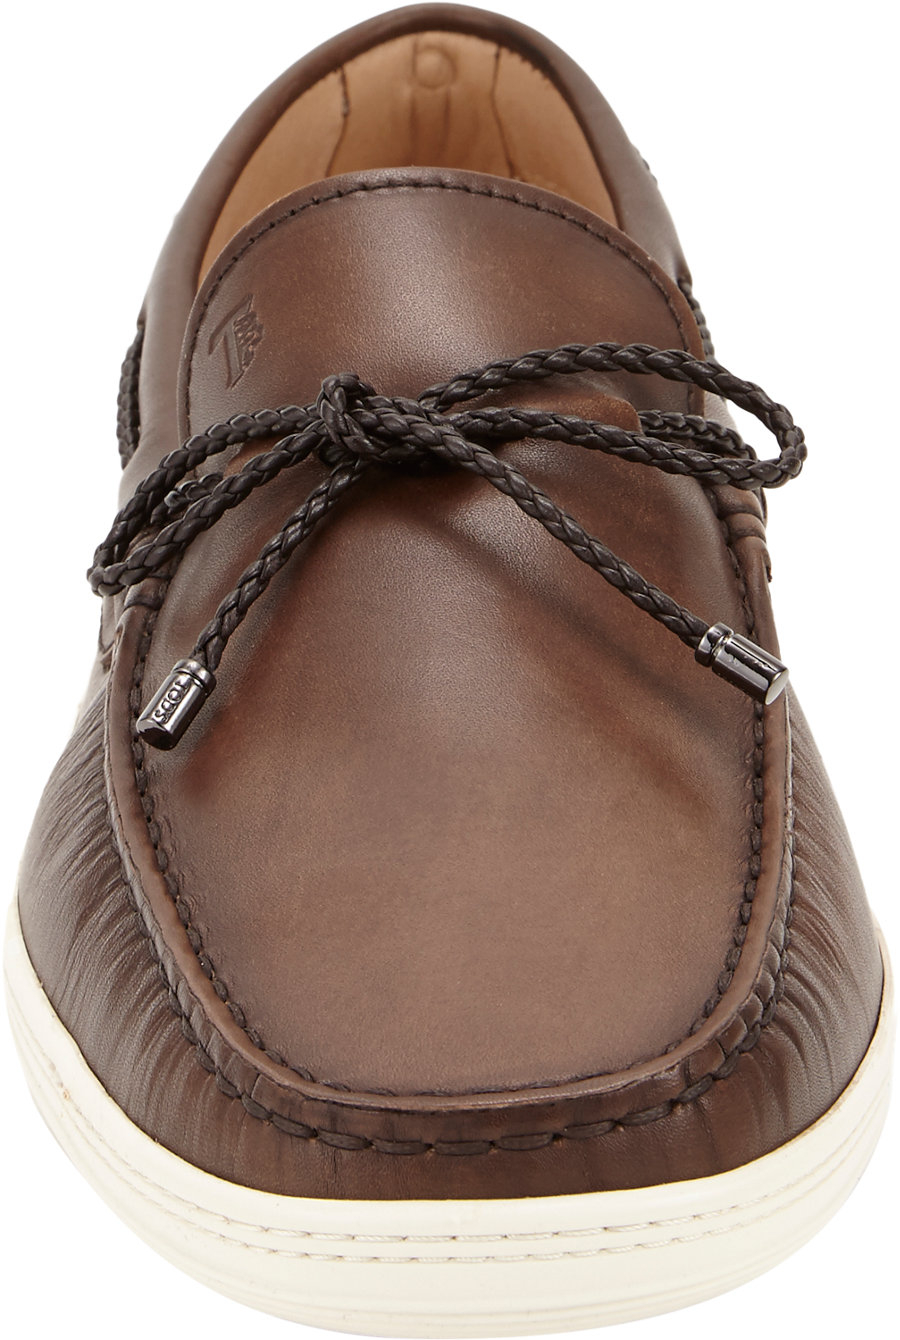 Tods Braided Tie Boat Shoes In Brown For Men Lyst New Voltus Sport Mens Plait Gallery